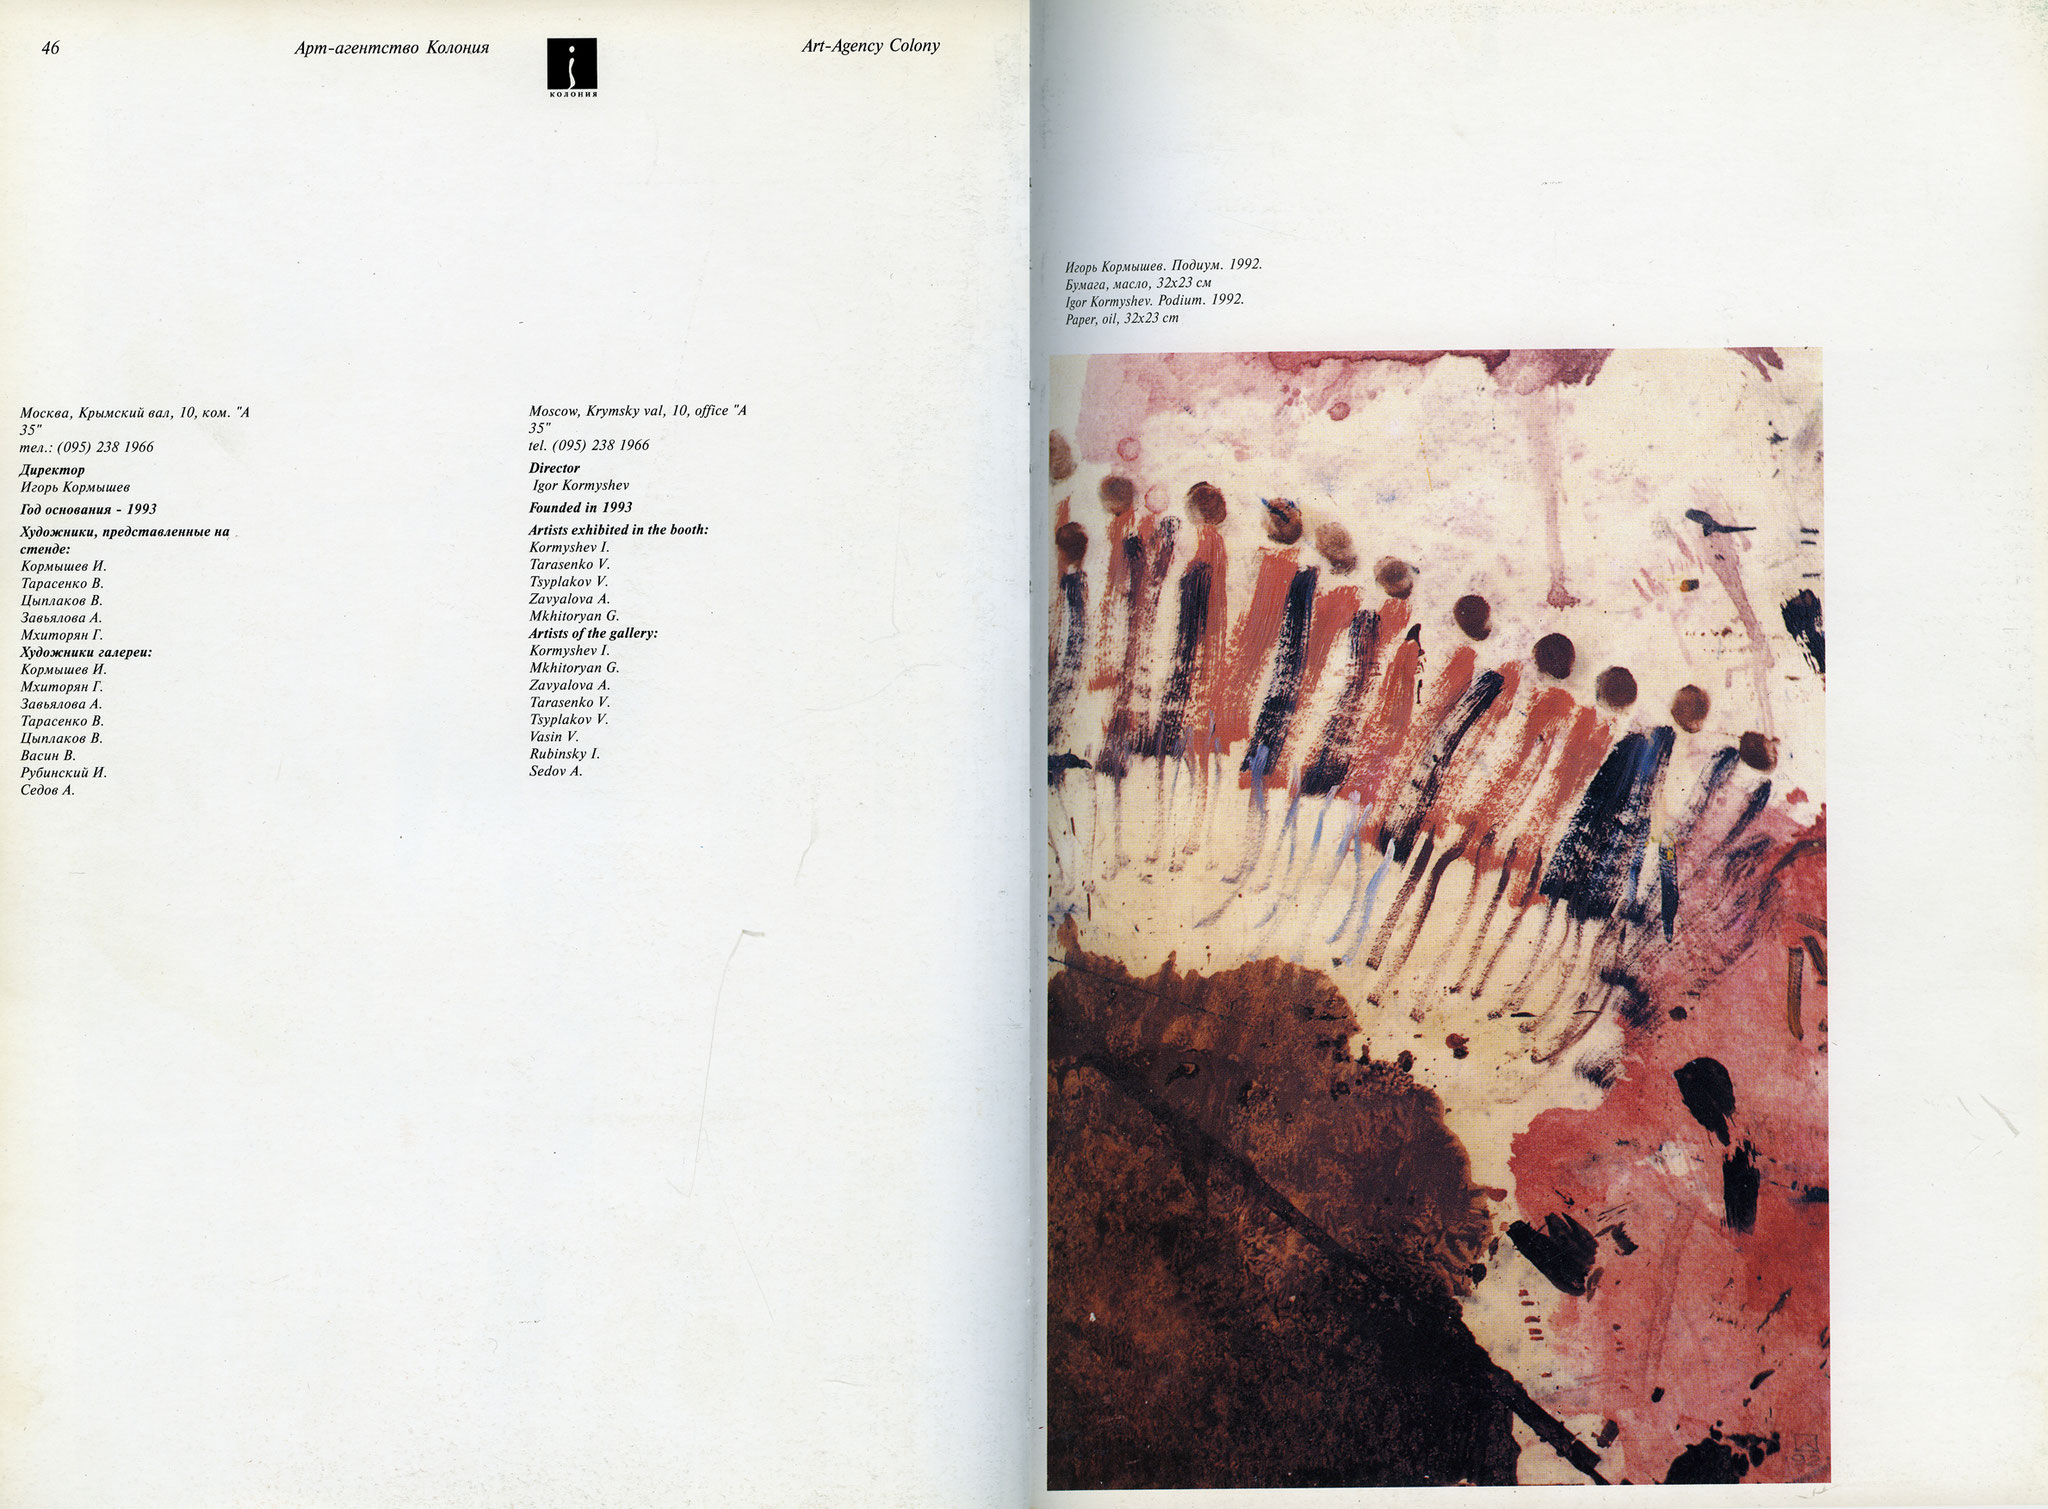 The catalog Art Moscow. May-June 1996, The Central House of Artists